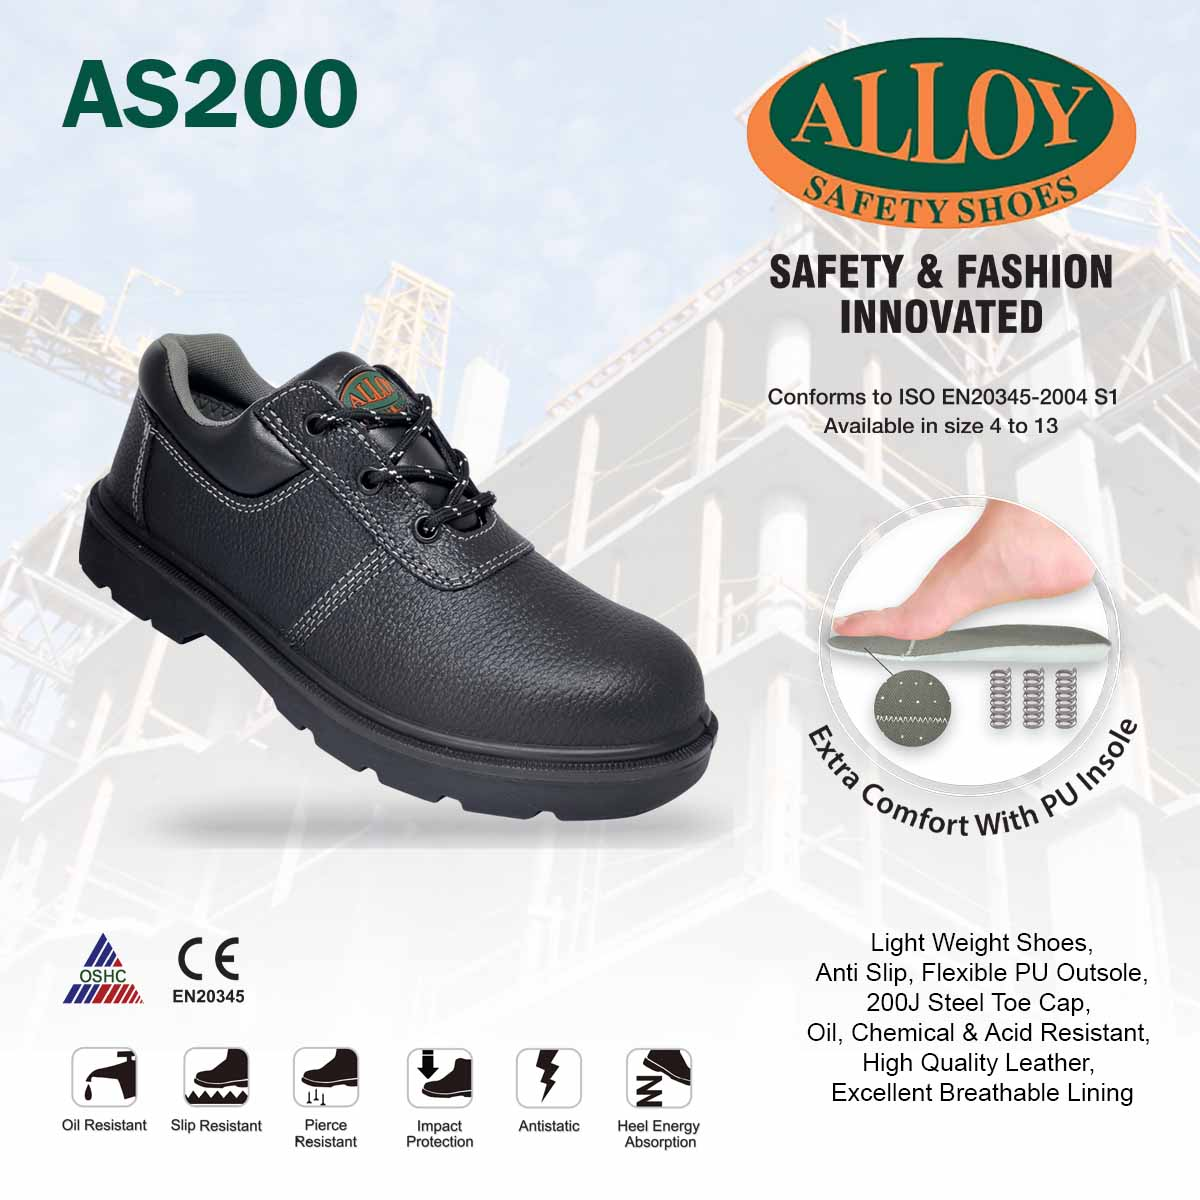 ALLOY SAFETY SHOES AS200: Buy sell